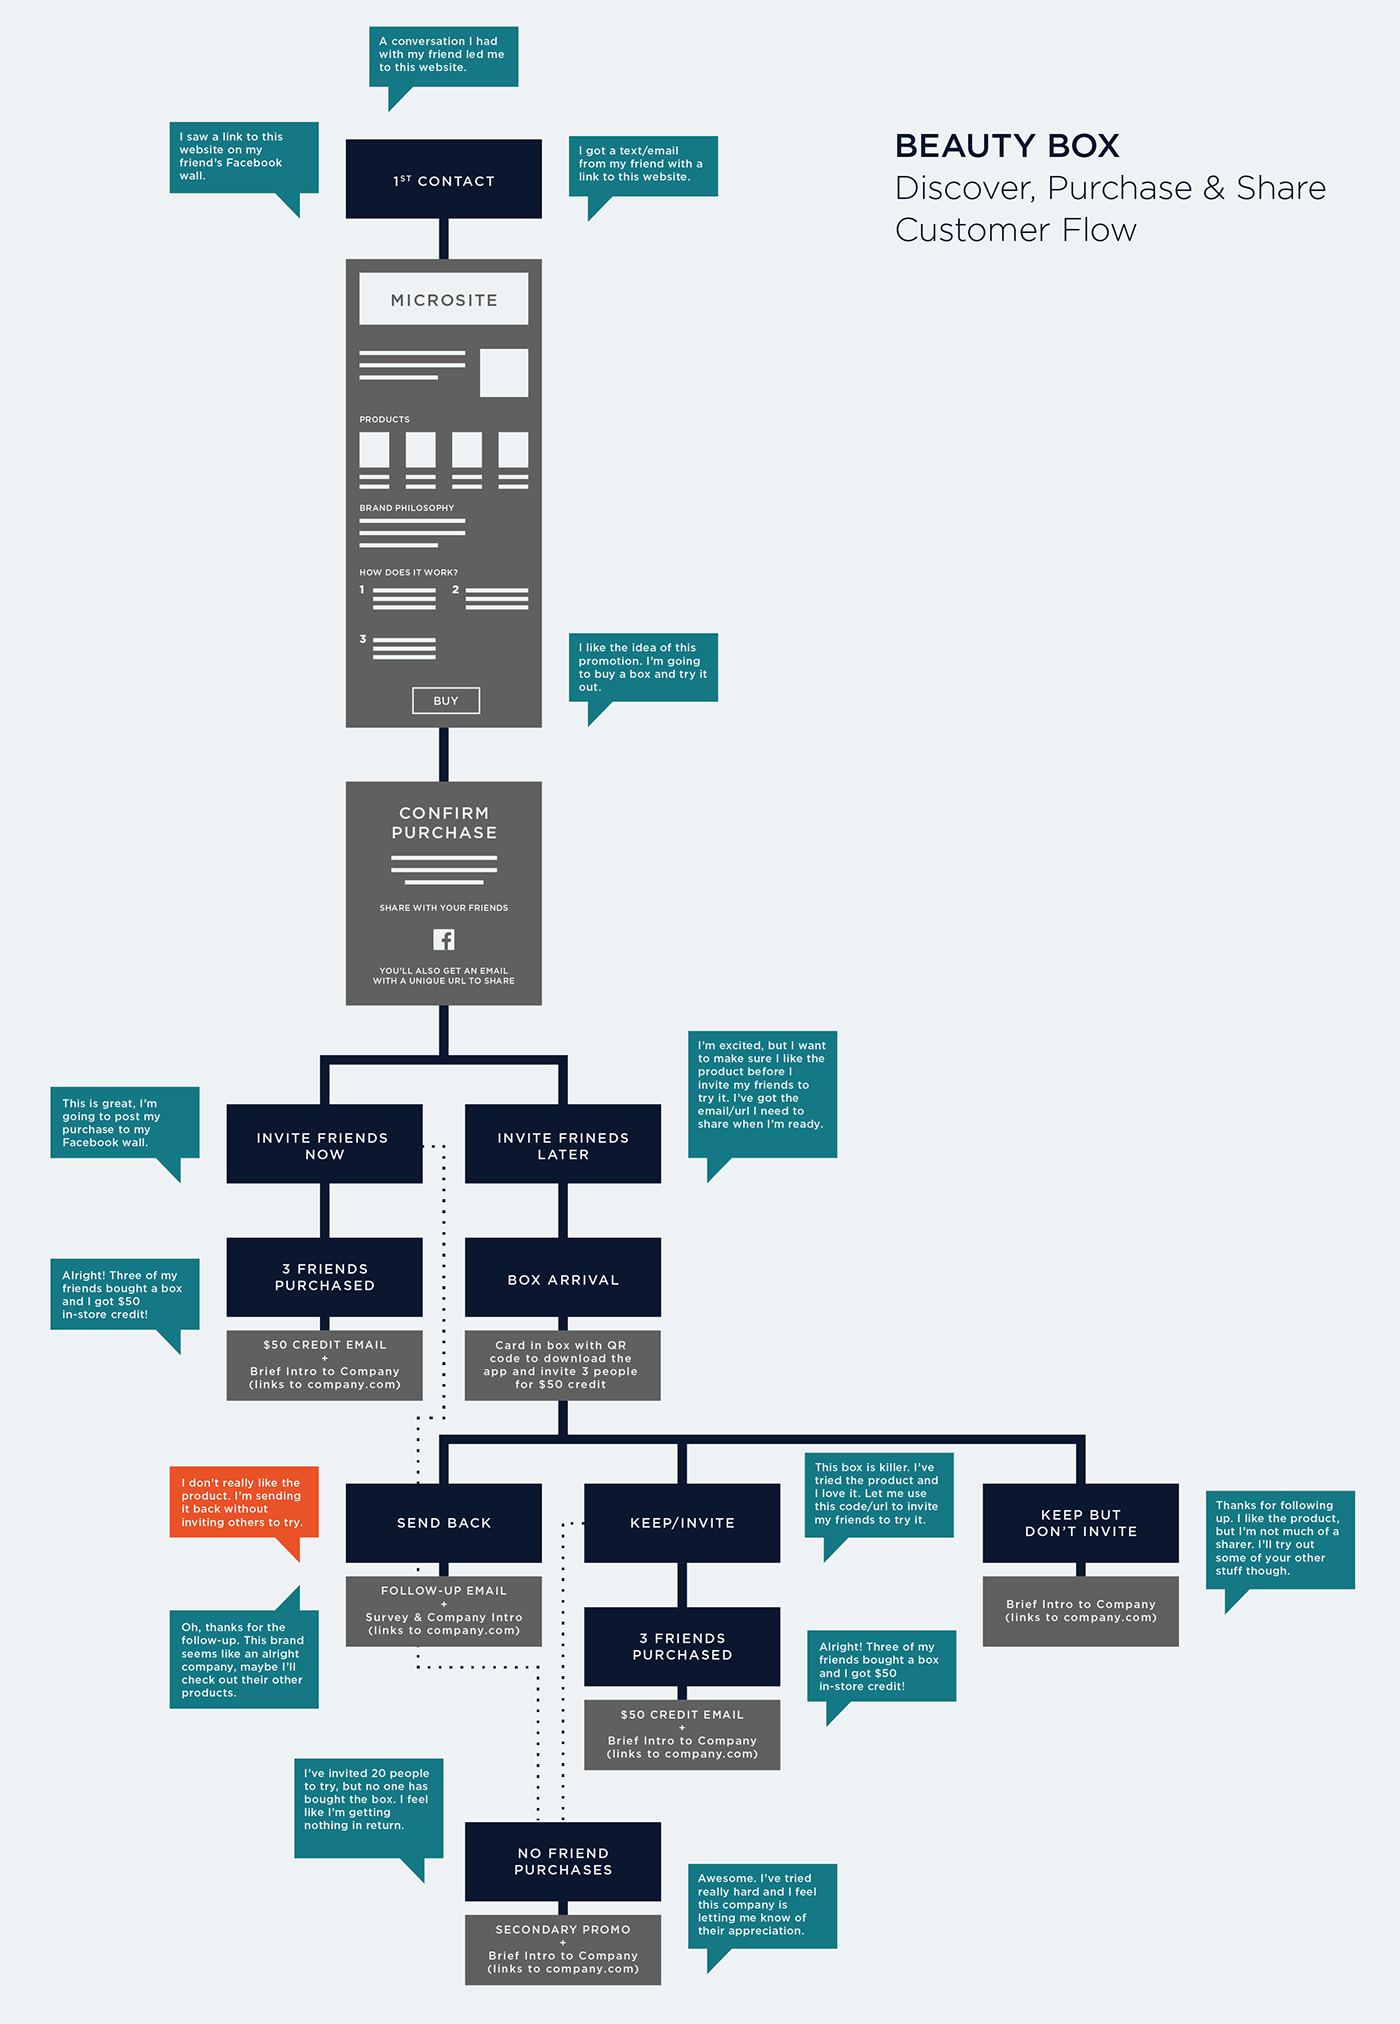 customer flow journey maps  multi-channel campaign